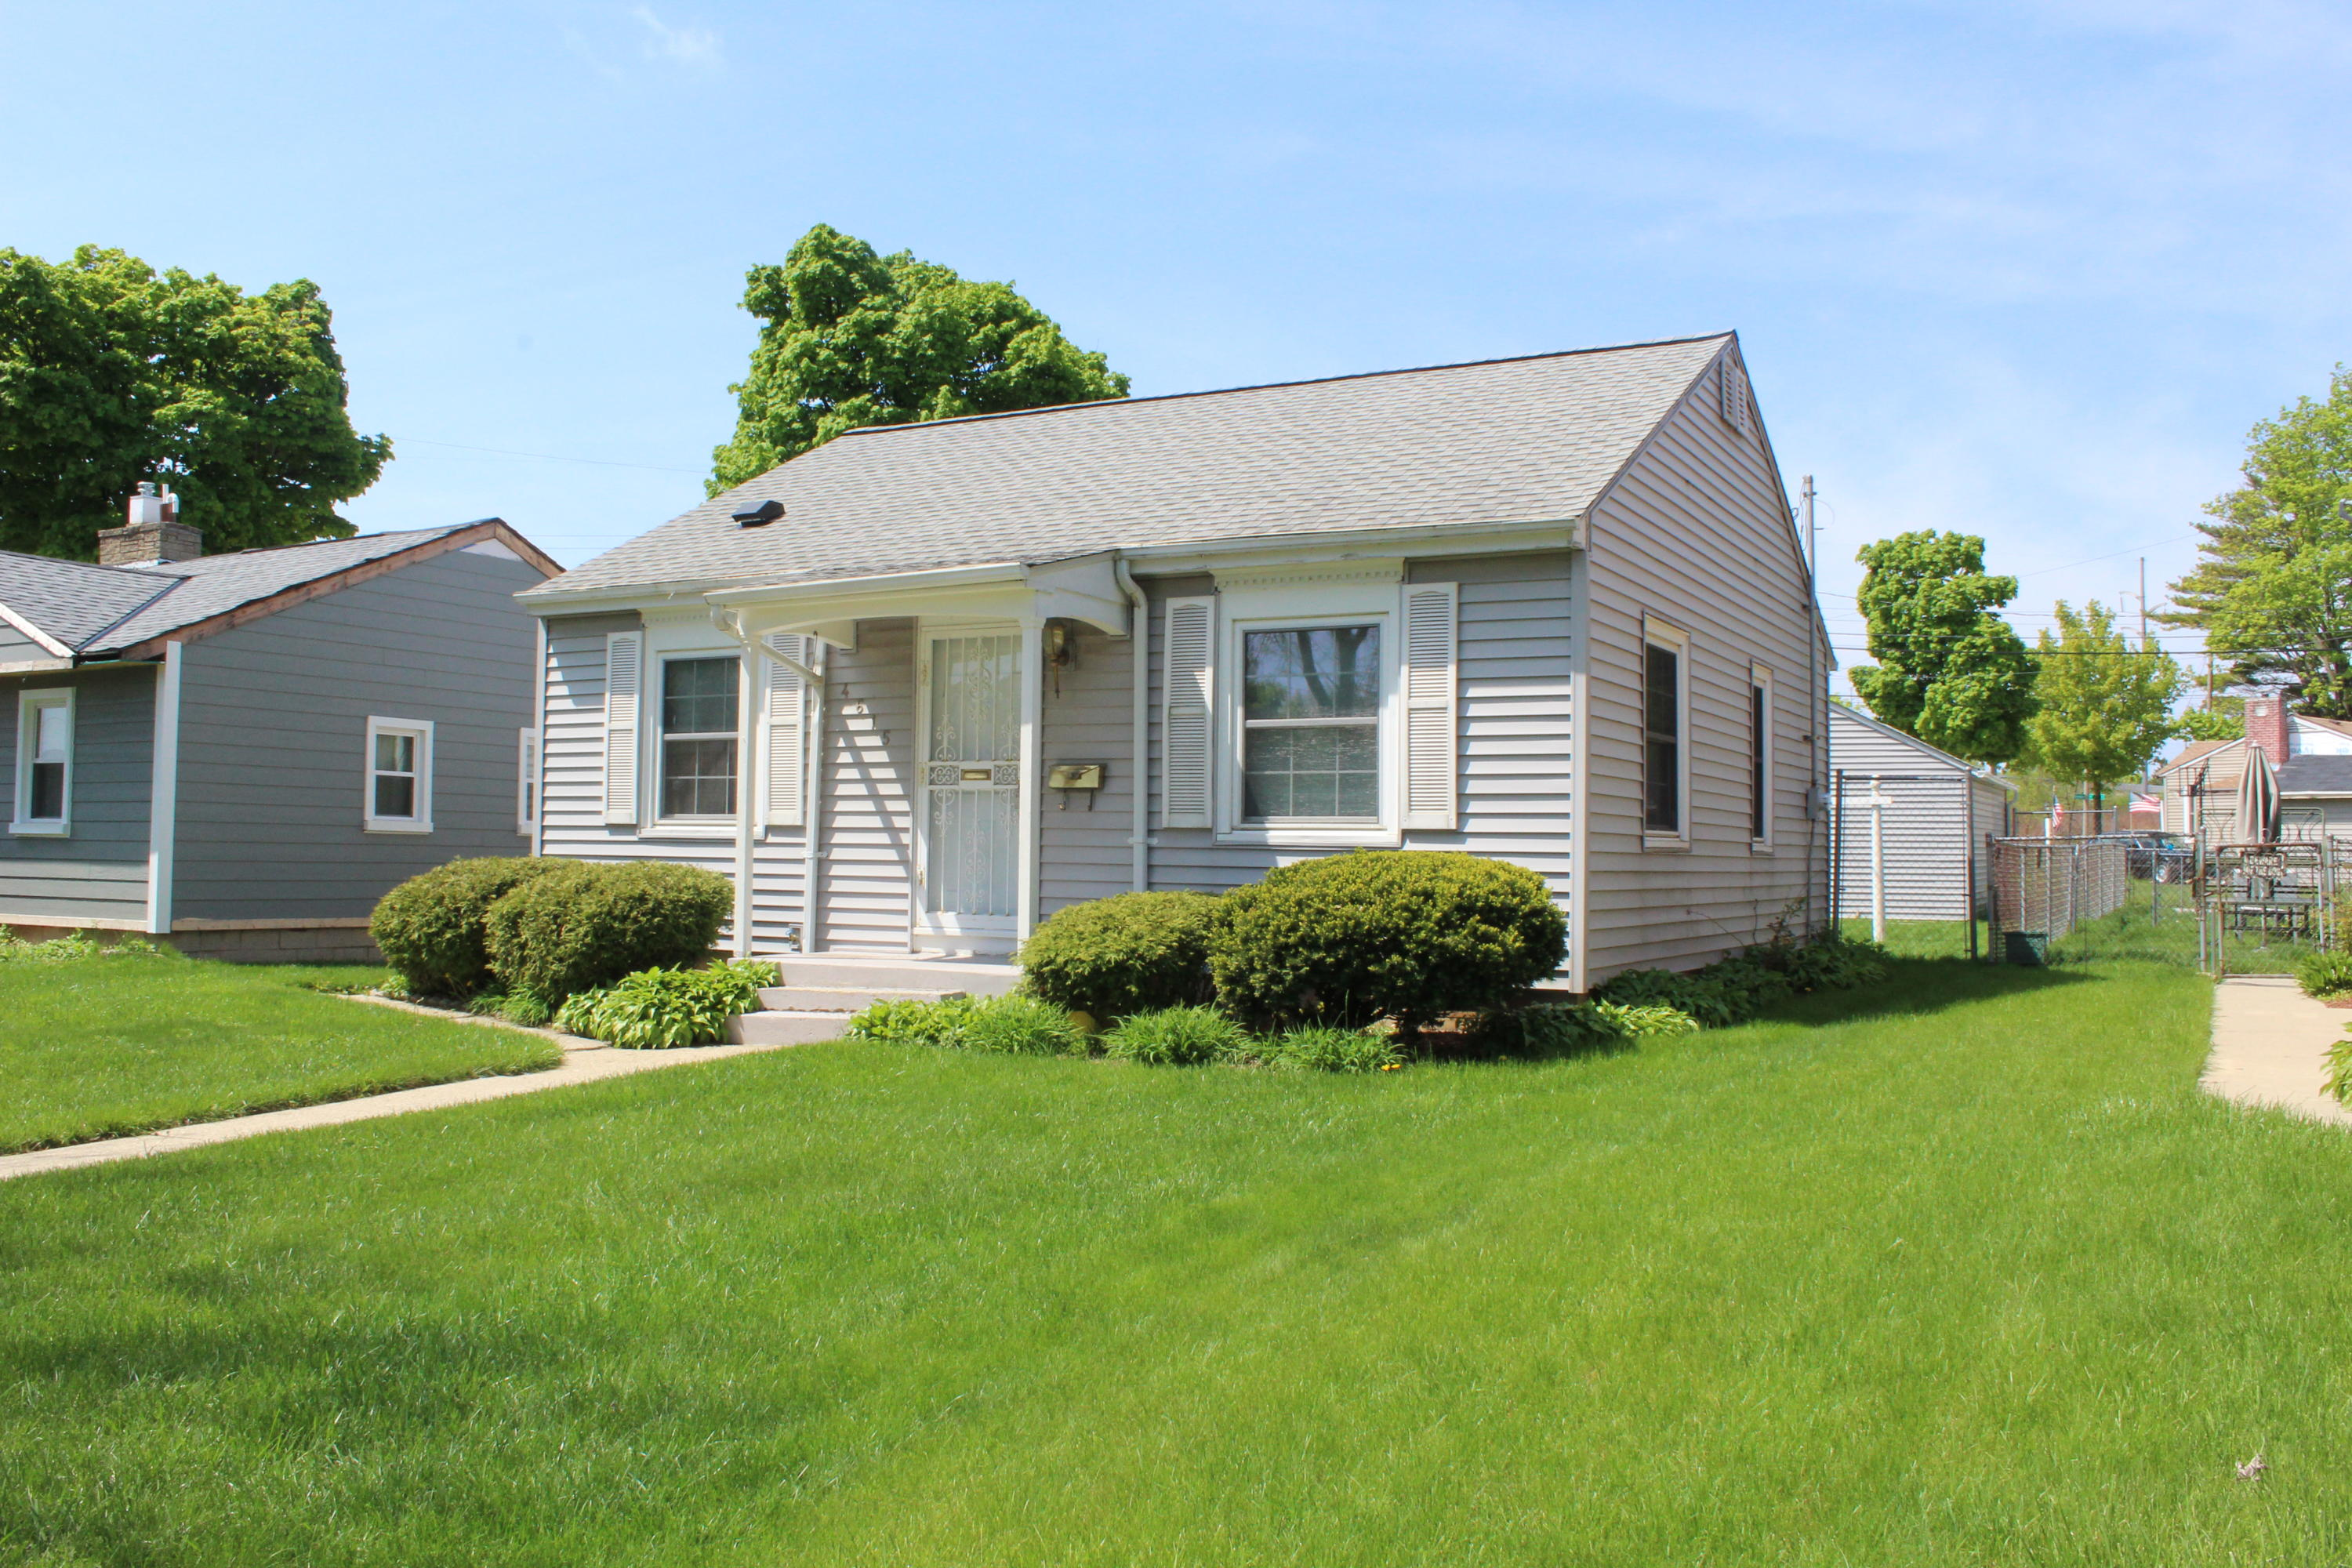 4615 18th St, Milwaukee, Wisconsin 53209, 2 Bedrooms Bedrooms, 4 Rooms Rooms,1 BathroomBathrooms,Single-Family,For Sale,18th St,1691453